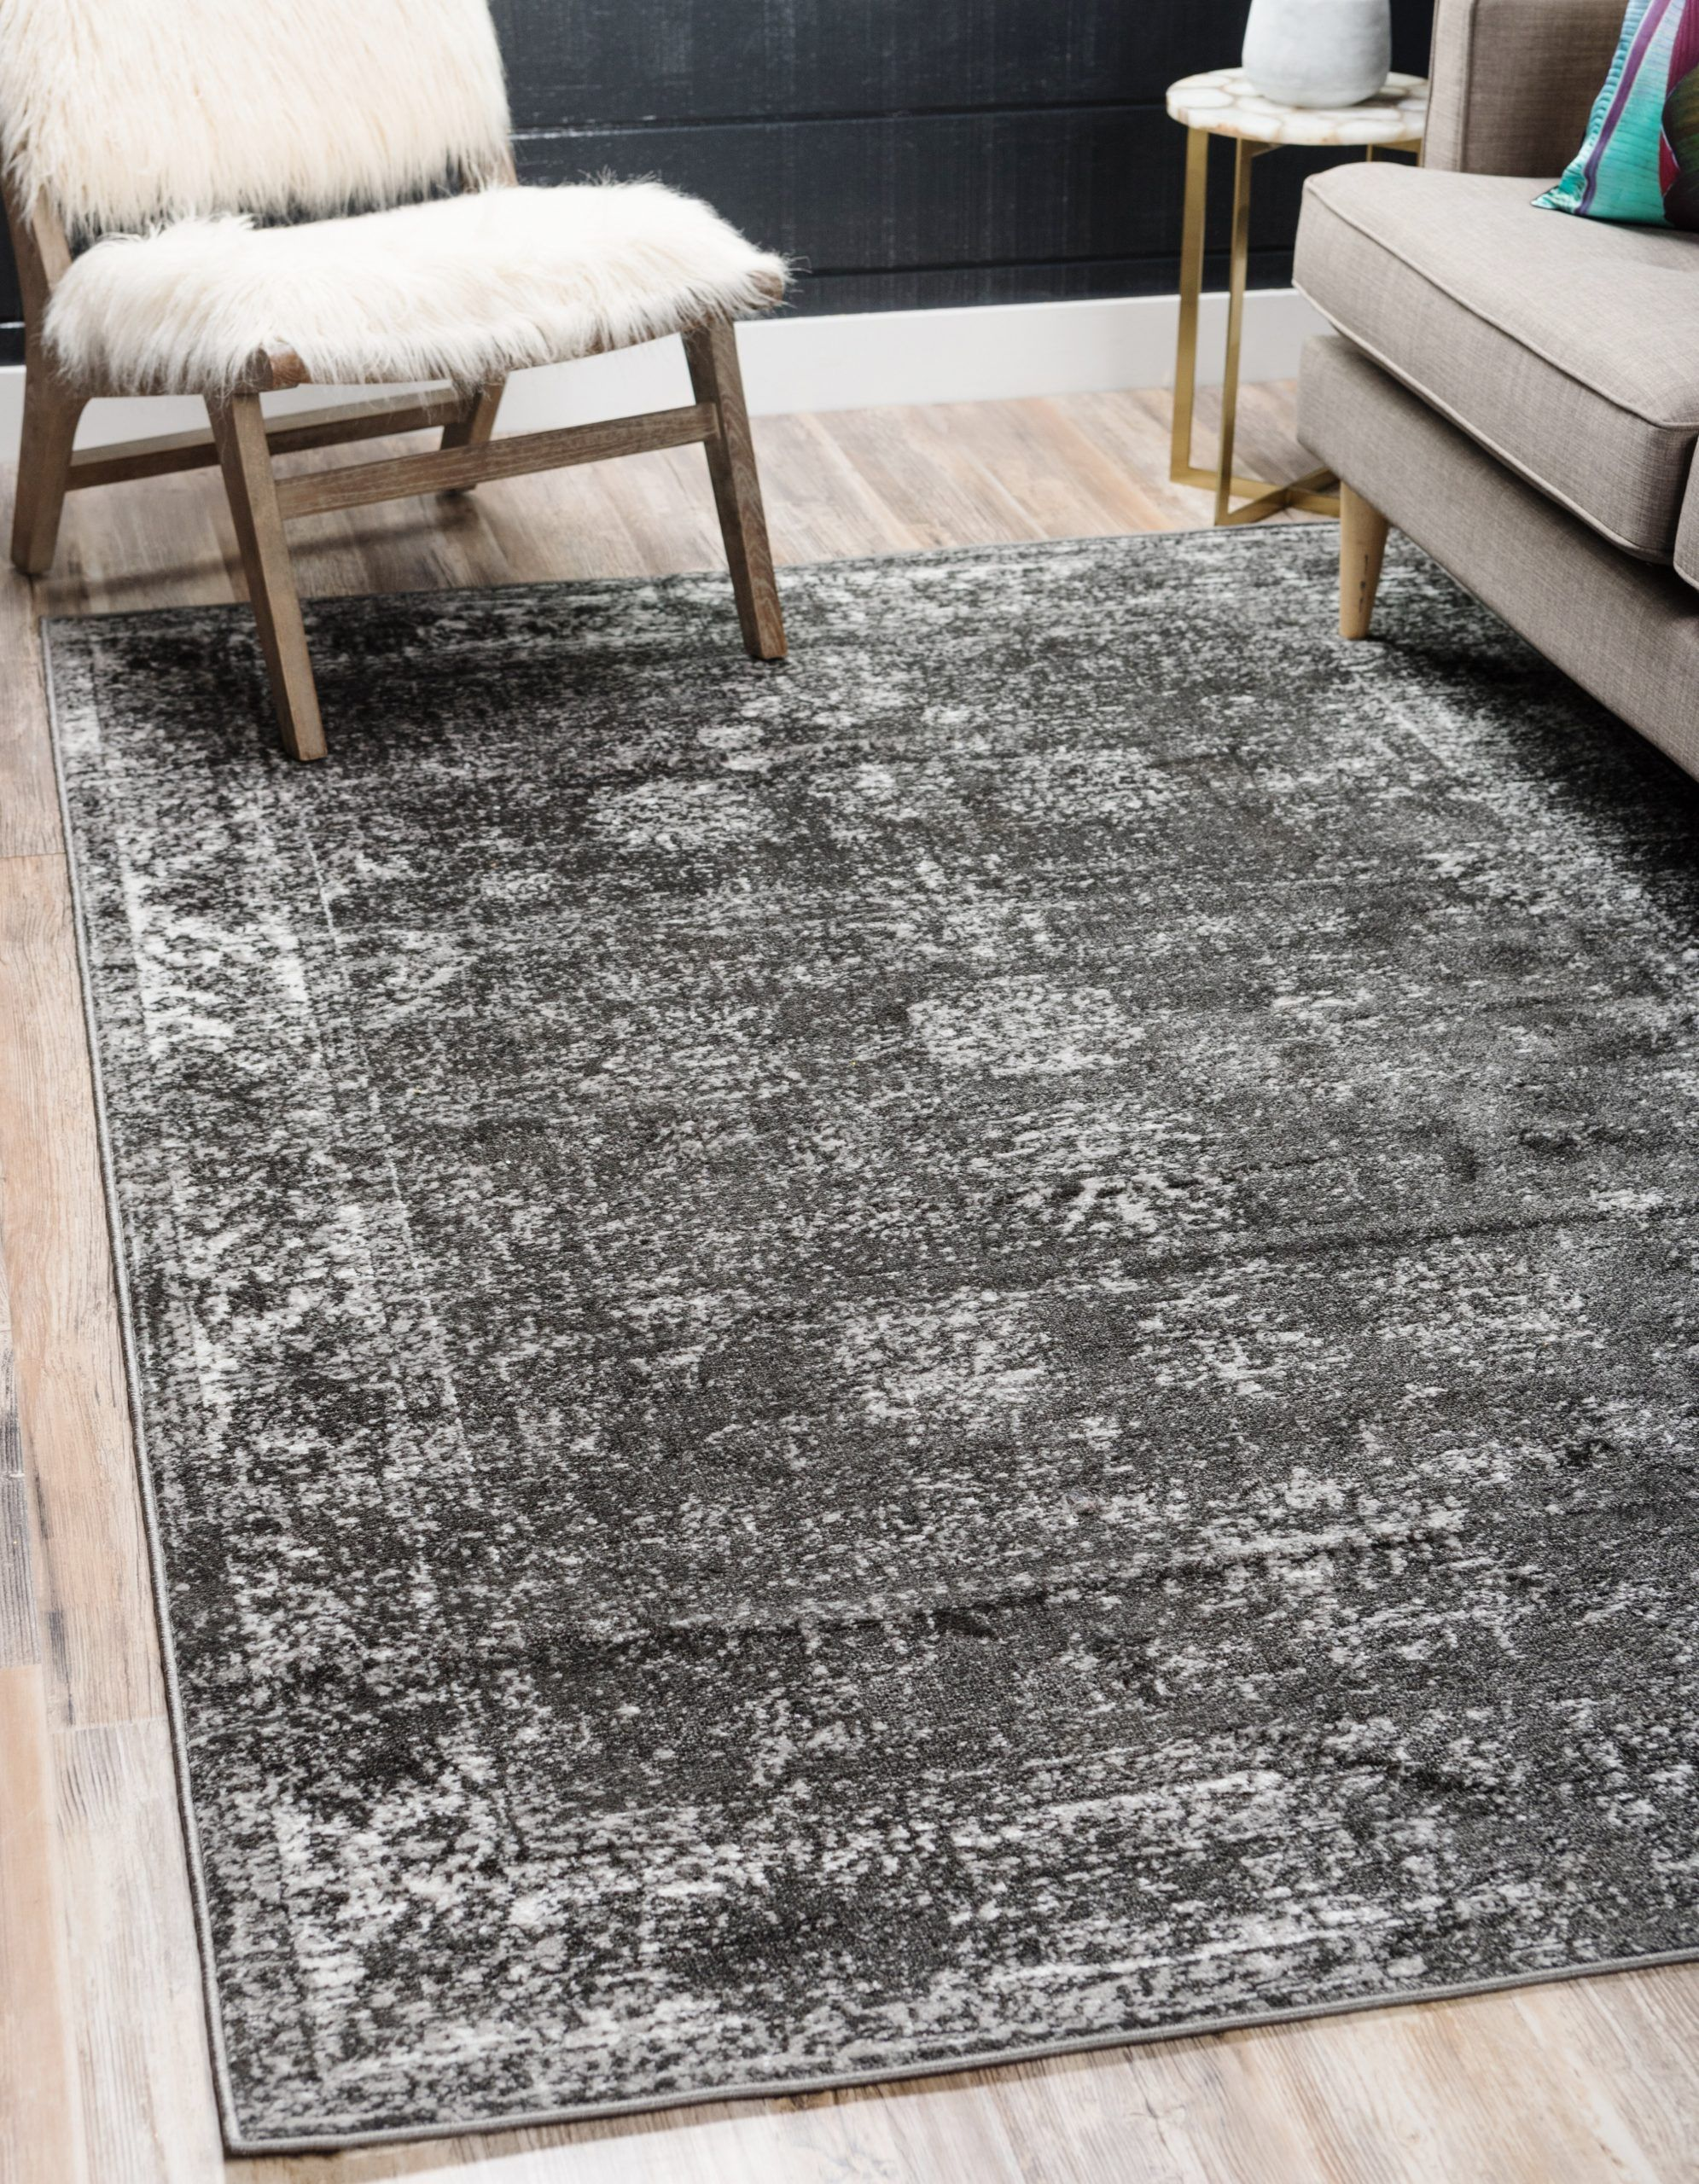 10 Insanely Beautiful Gray Living Room Rugs In 2020 Unique Loom